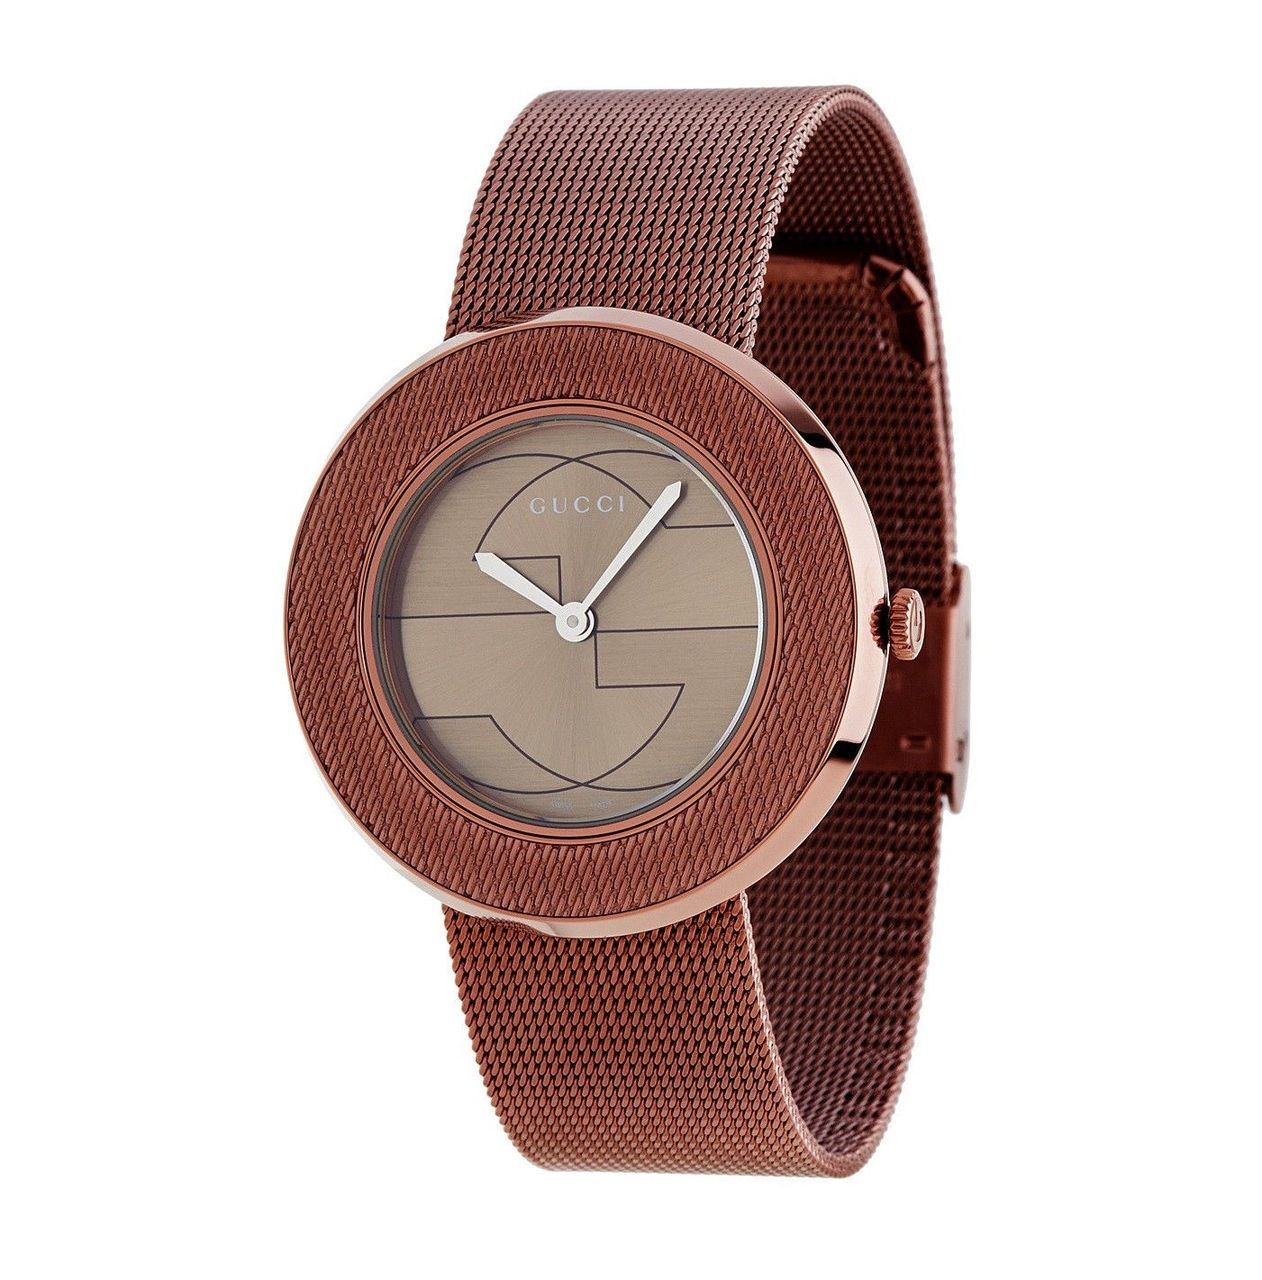 b8742fc5048 Gucci u-play medium brown pvd case  mesh band women s watch